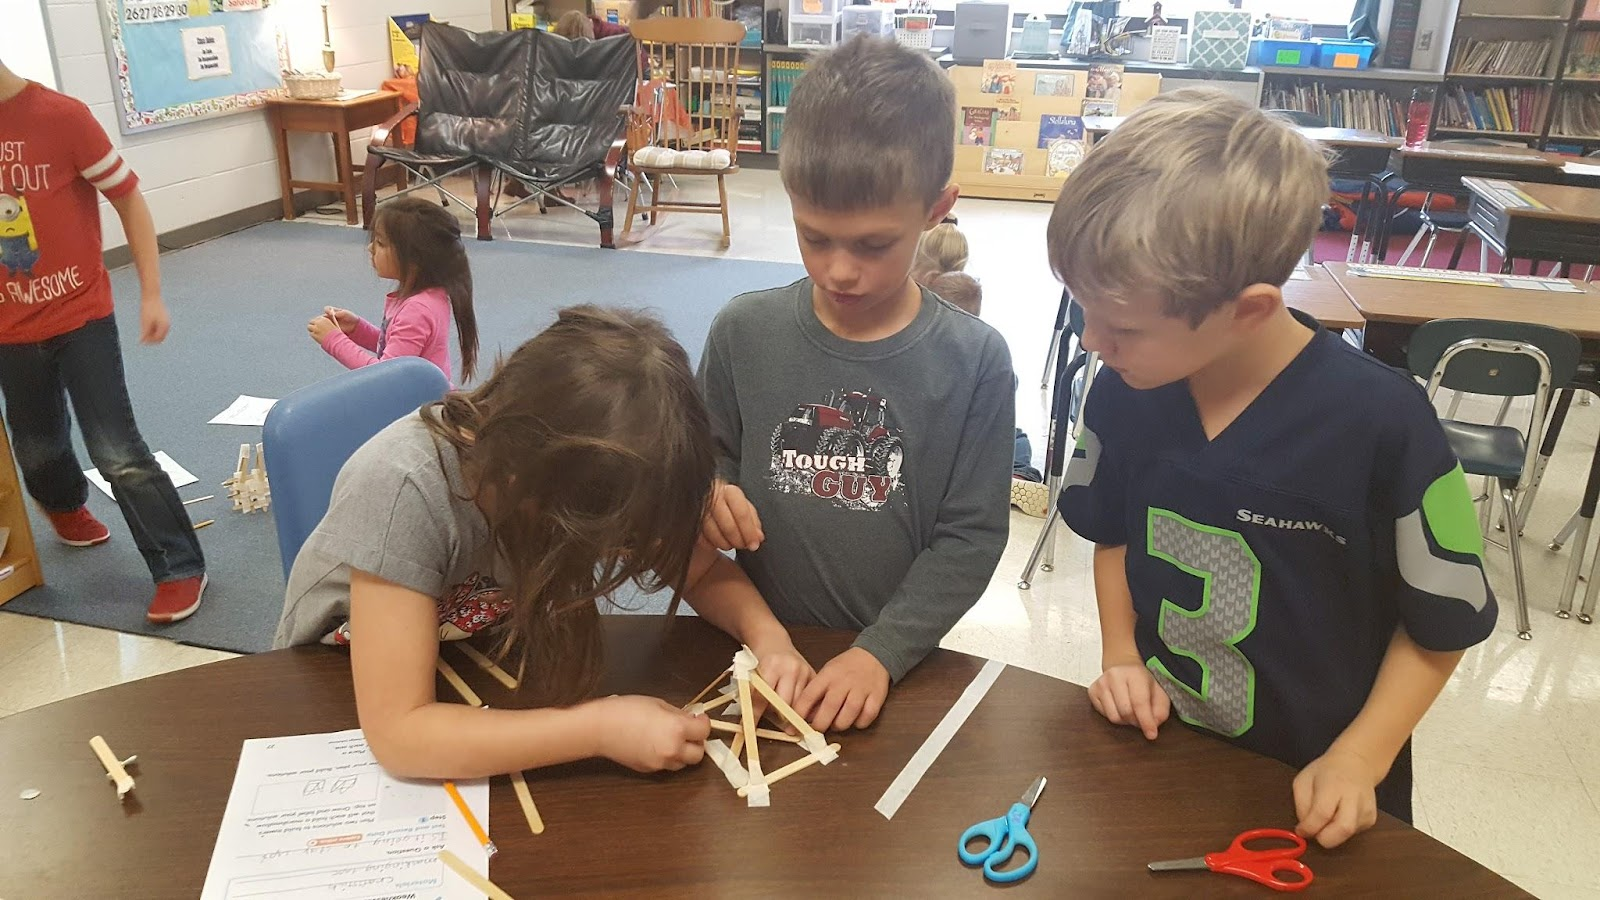 Students building craft tower